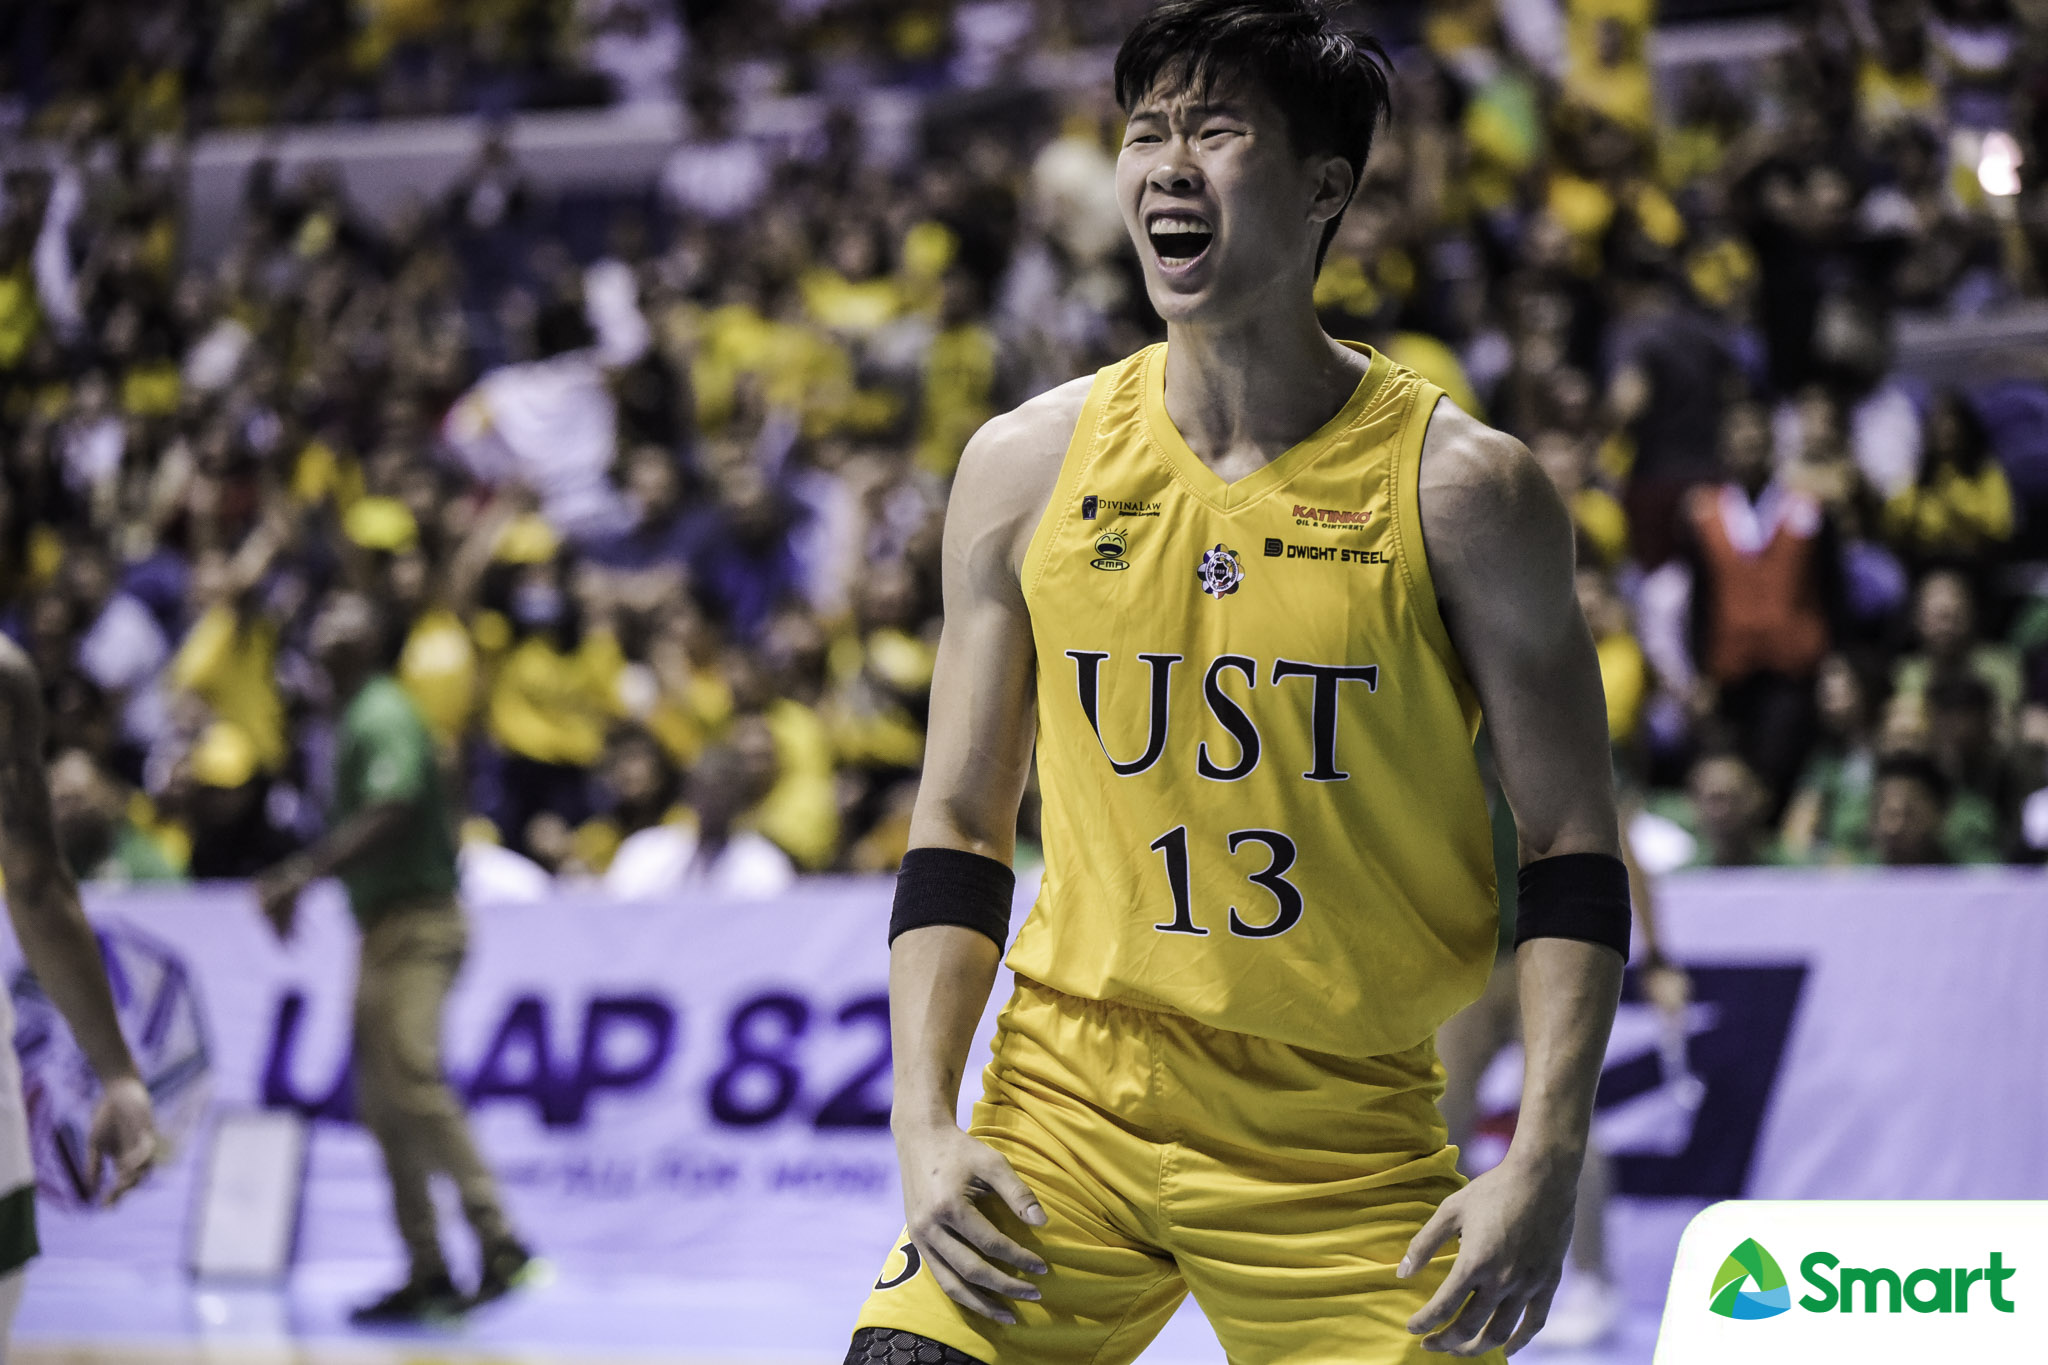 Tiebreaker Times Zachy Huang to end UST career where he started -- the Finals Basketball News UAAP UST  Zachy Huang UST Men's Basketball UAAP Season 82 Men's Basketball UAAP Season 82